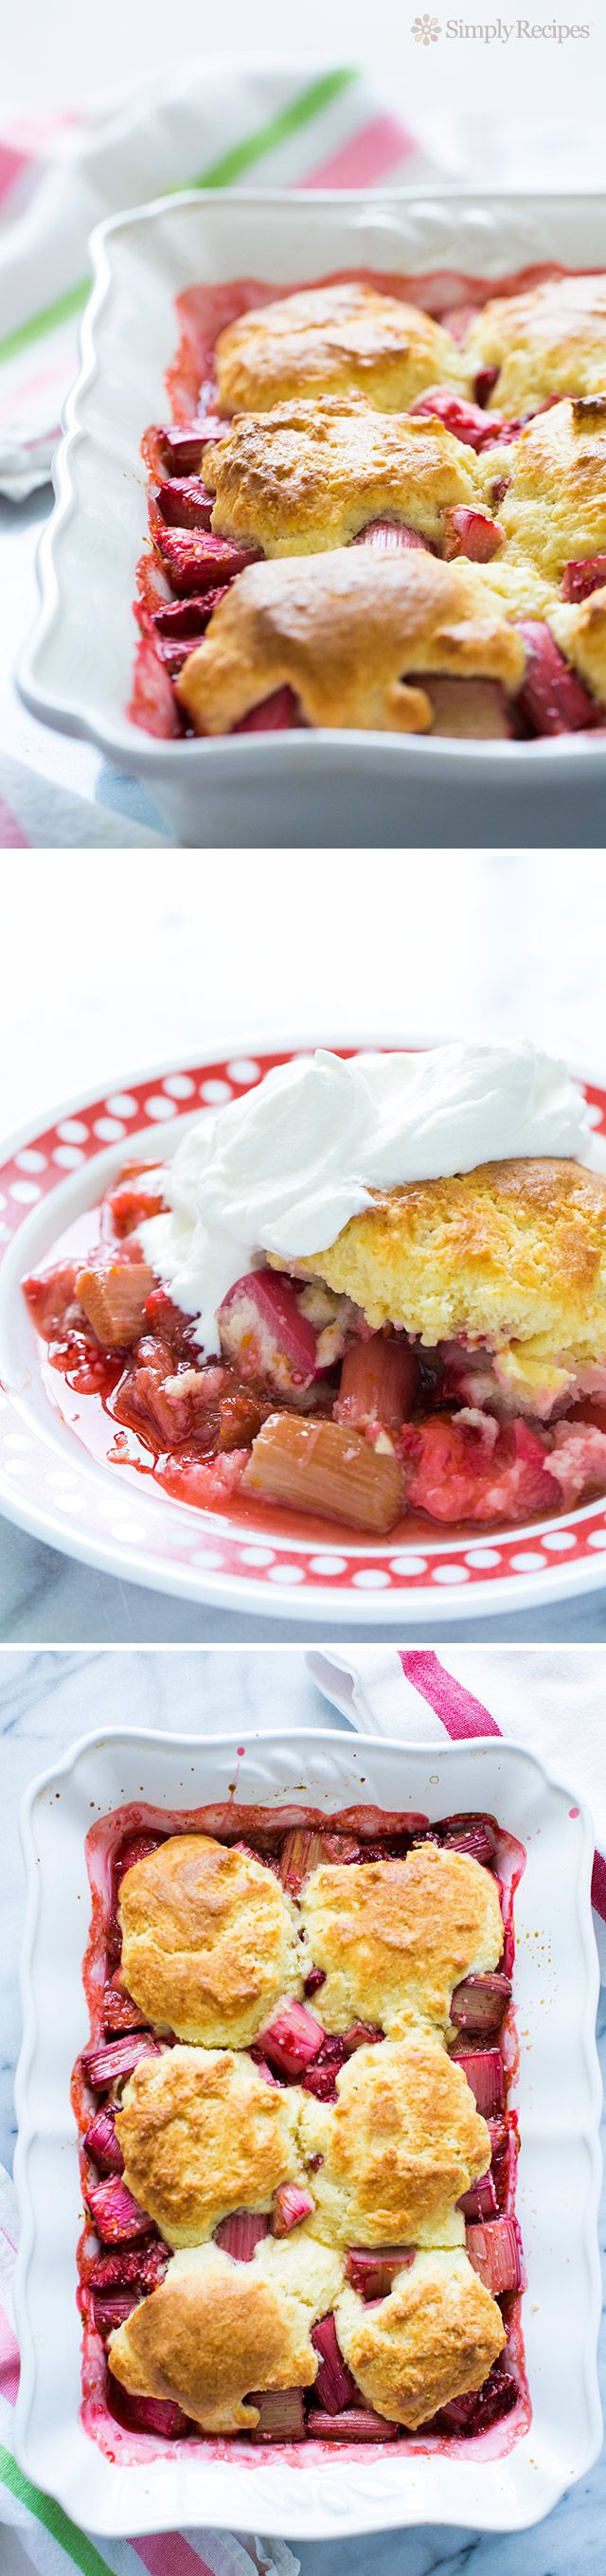 Easy-to-make strawberry rhubarb cobbler! Perfect for #FourthOfJuly  Strawberries, rhubarb, sugar, orange peel baked with a biscuit-like cobbler crust topping.  Serve with whipped cream. ~ SimplyRecipes.com